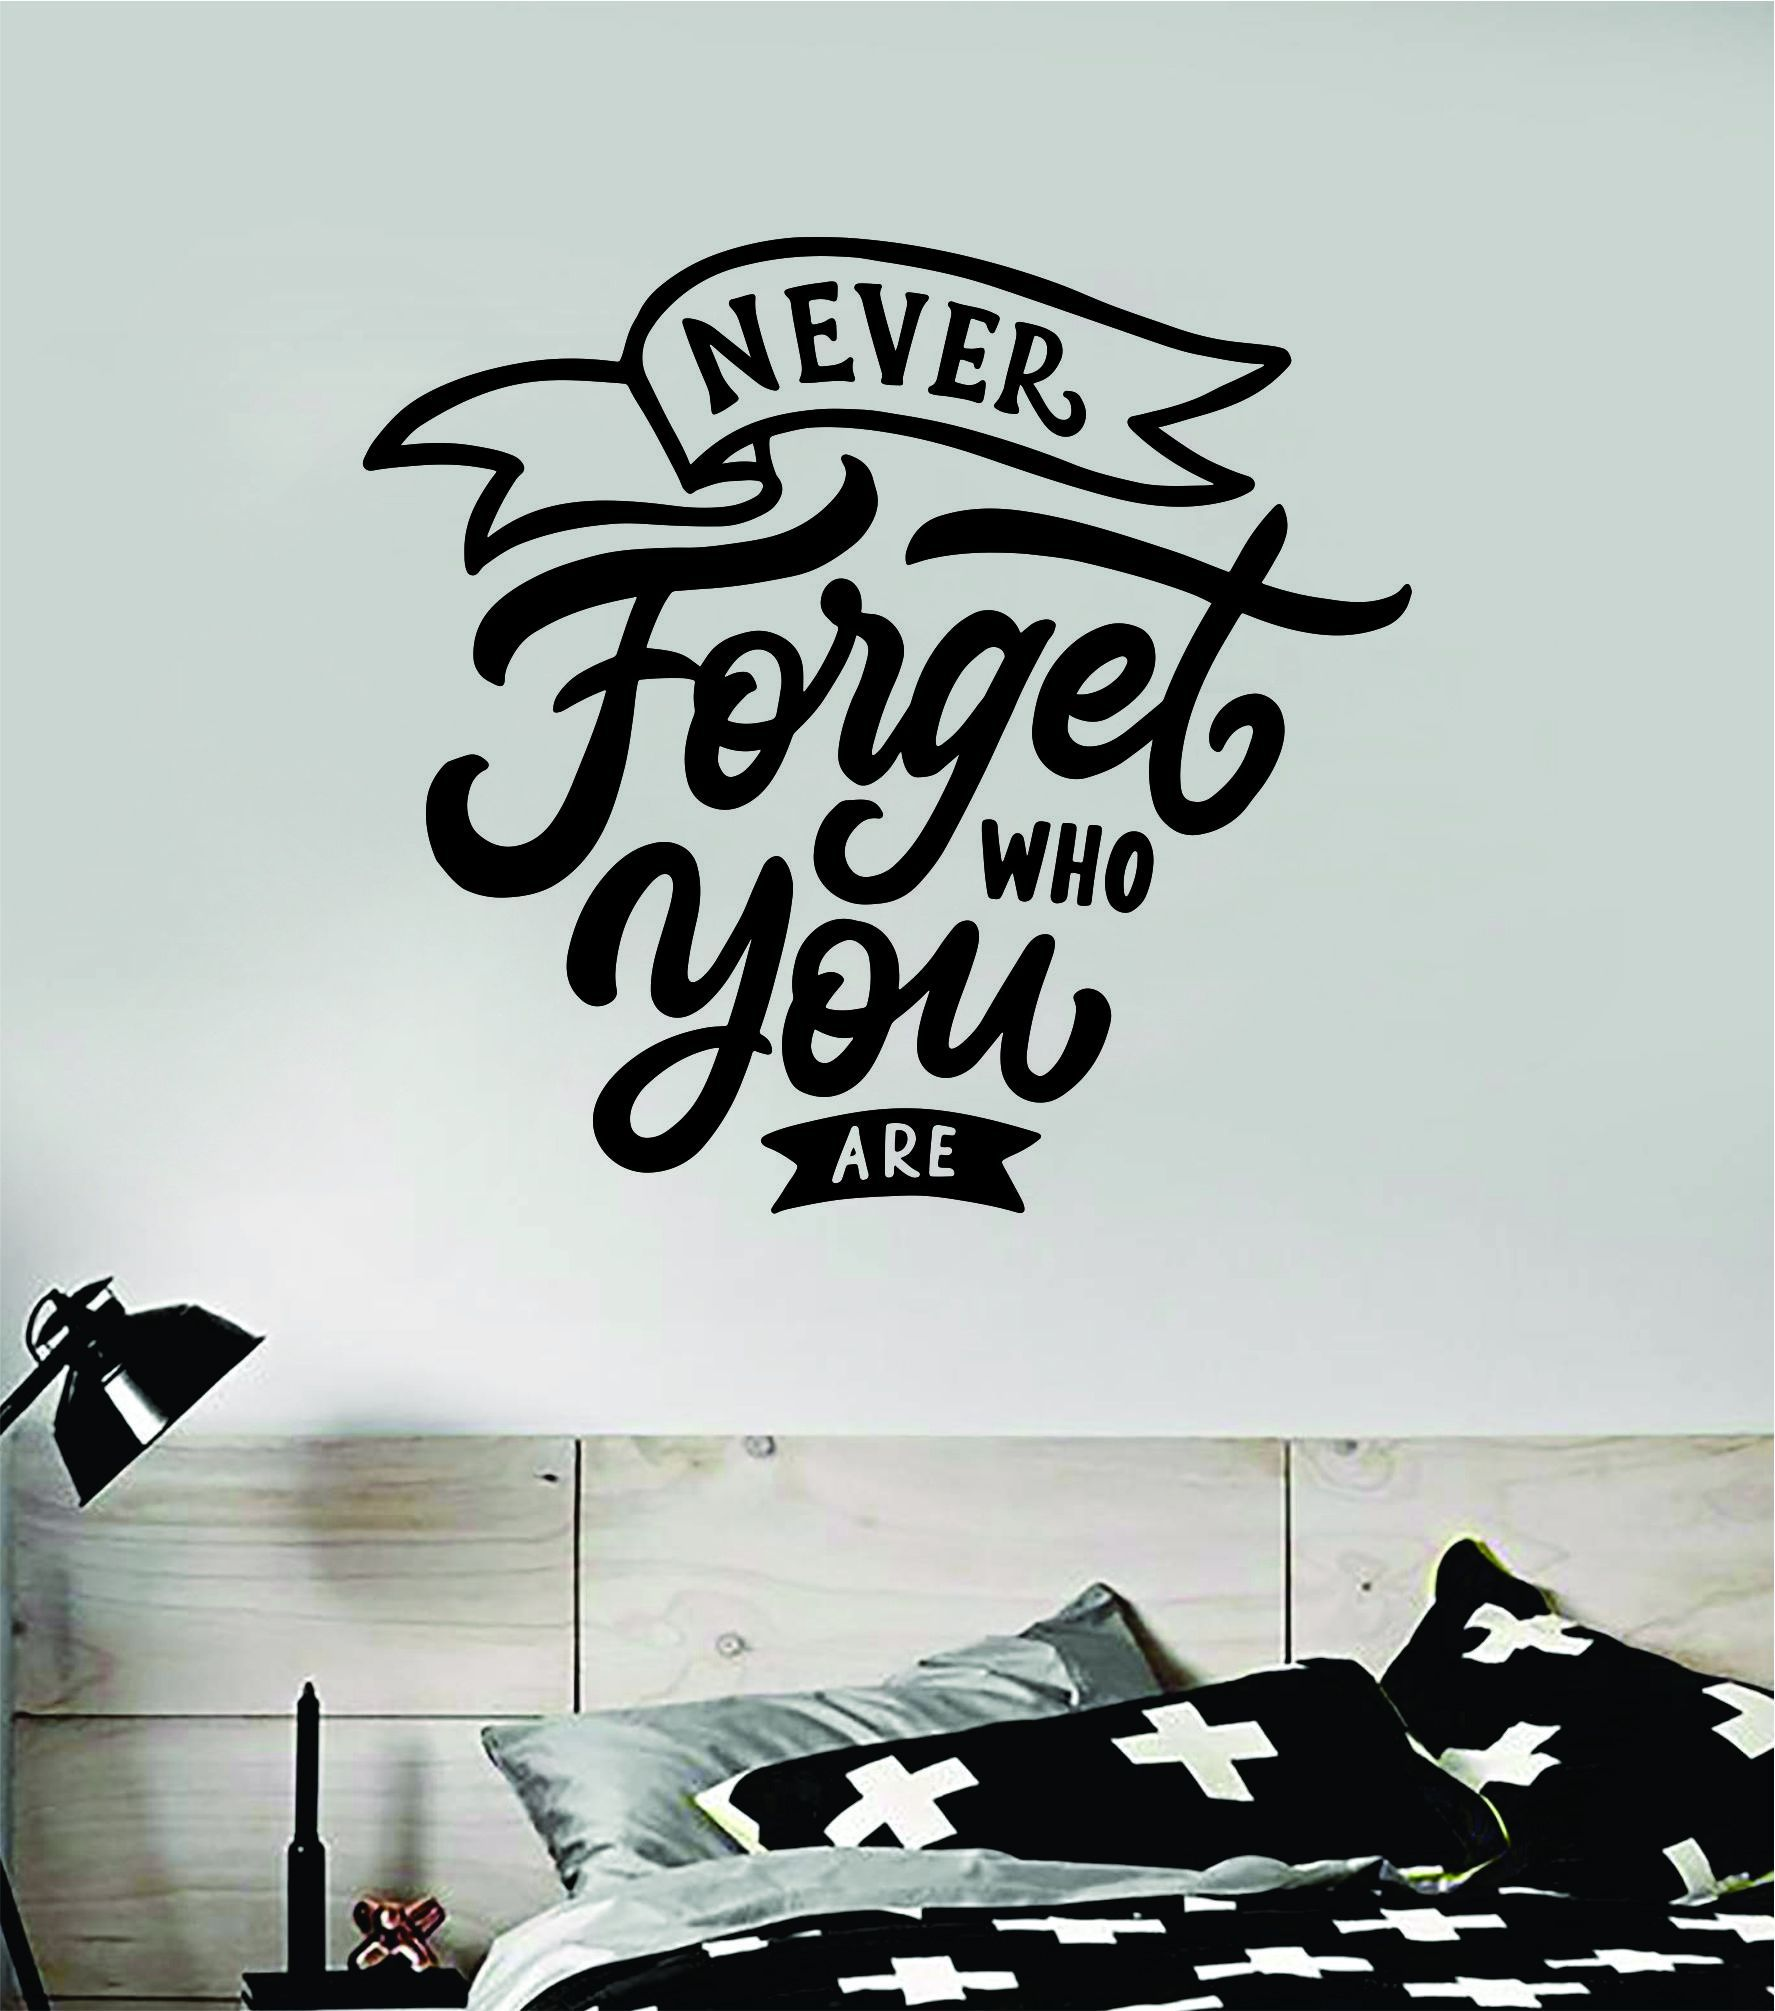 Never Forget Who You Are Wall Decal Sticker Vinyl Art Bedroom Room Home Decor Inspirational Motivational Teen Baby Nursery School - black